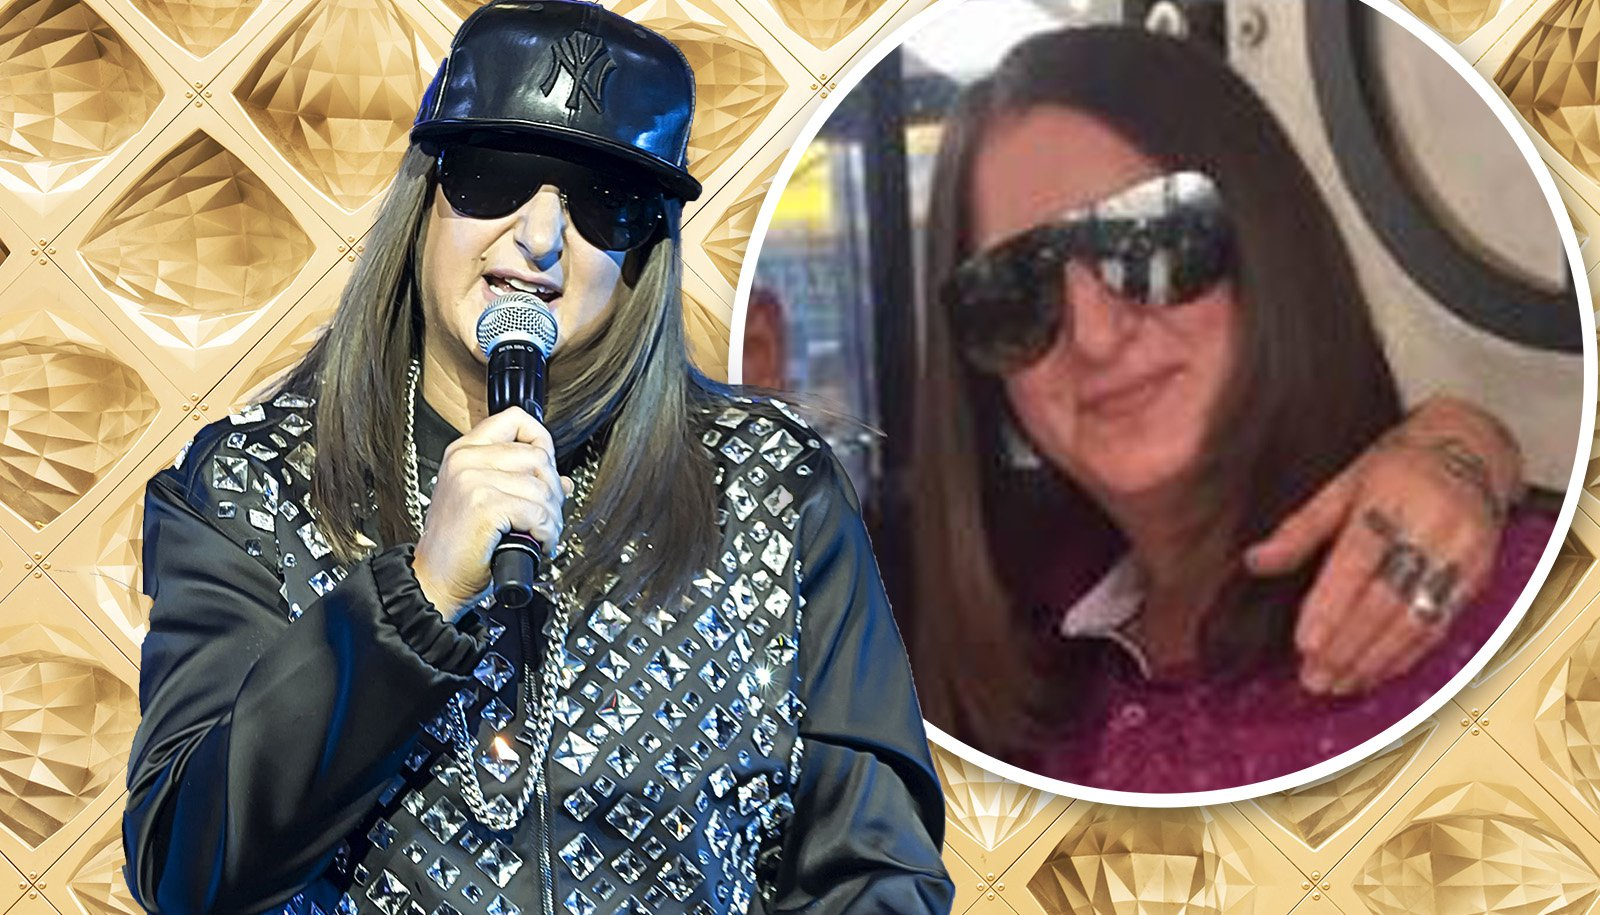 The X Factor's Honey G has undergone a Hollywood makeover and she's pretty chuffed about it